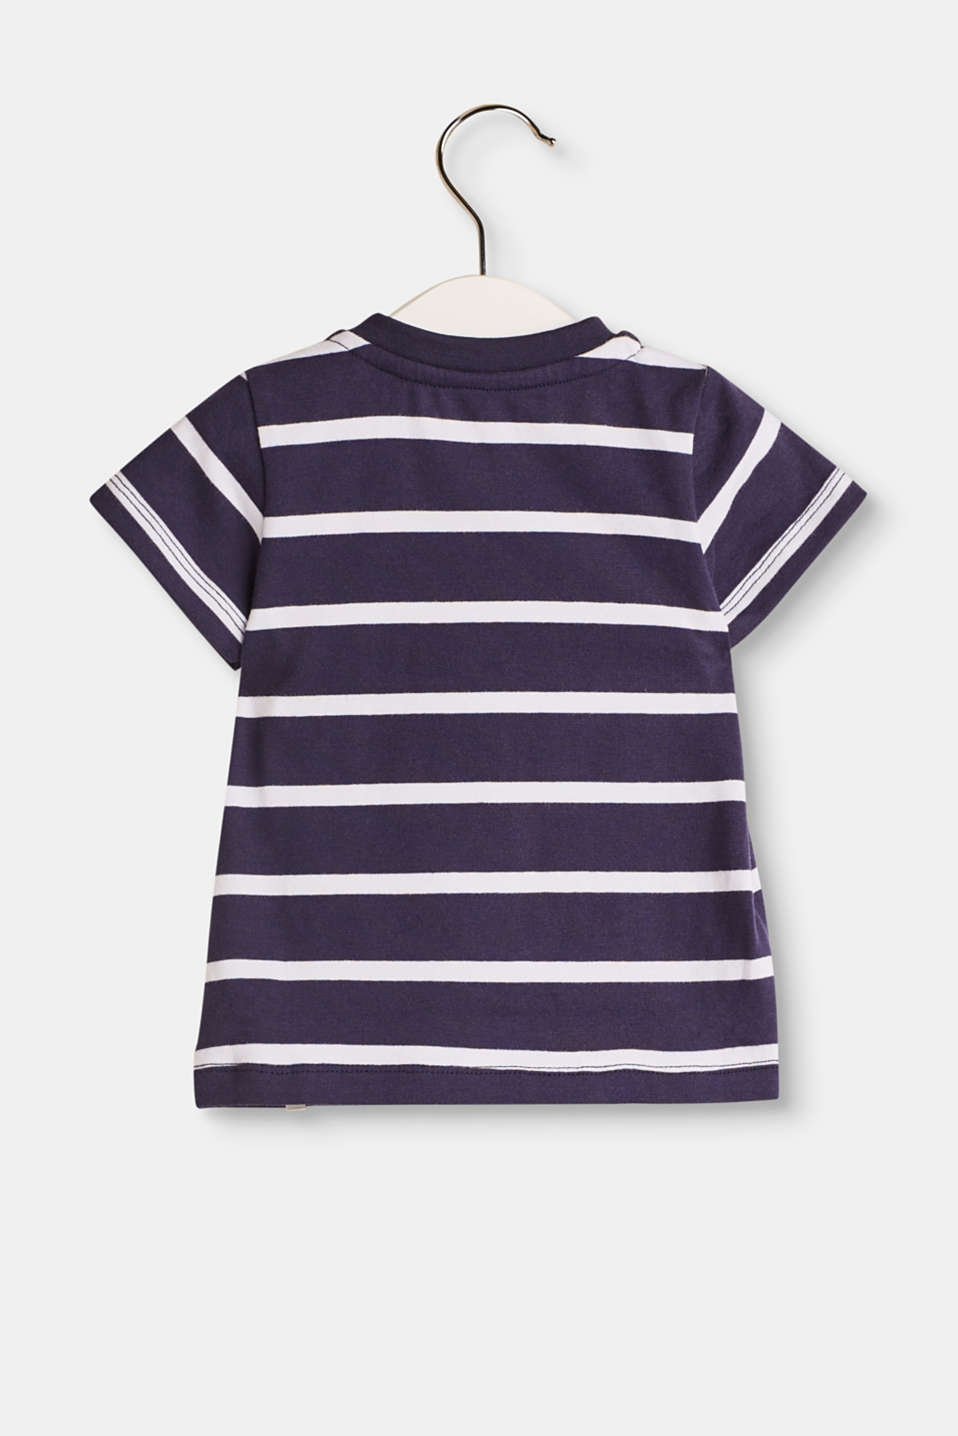 T-shirt with nautical stripes, 100% cotton